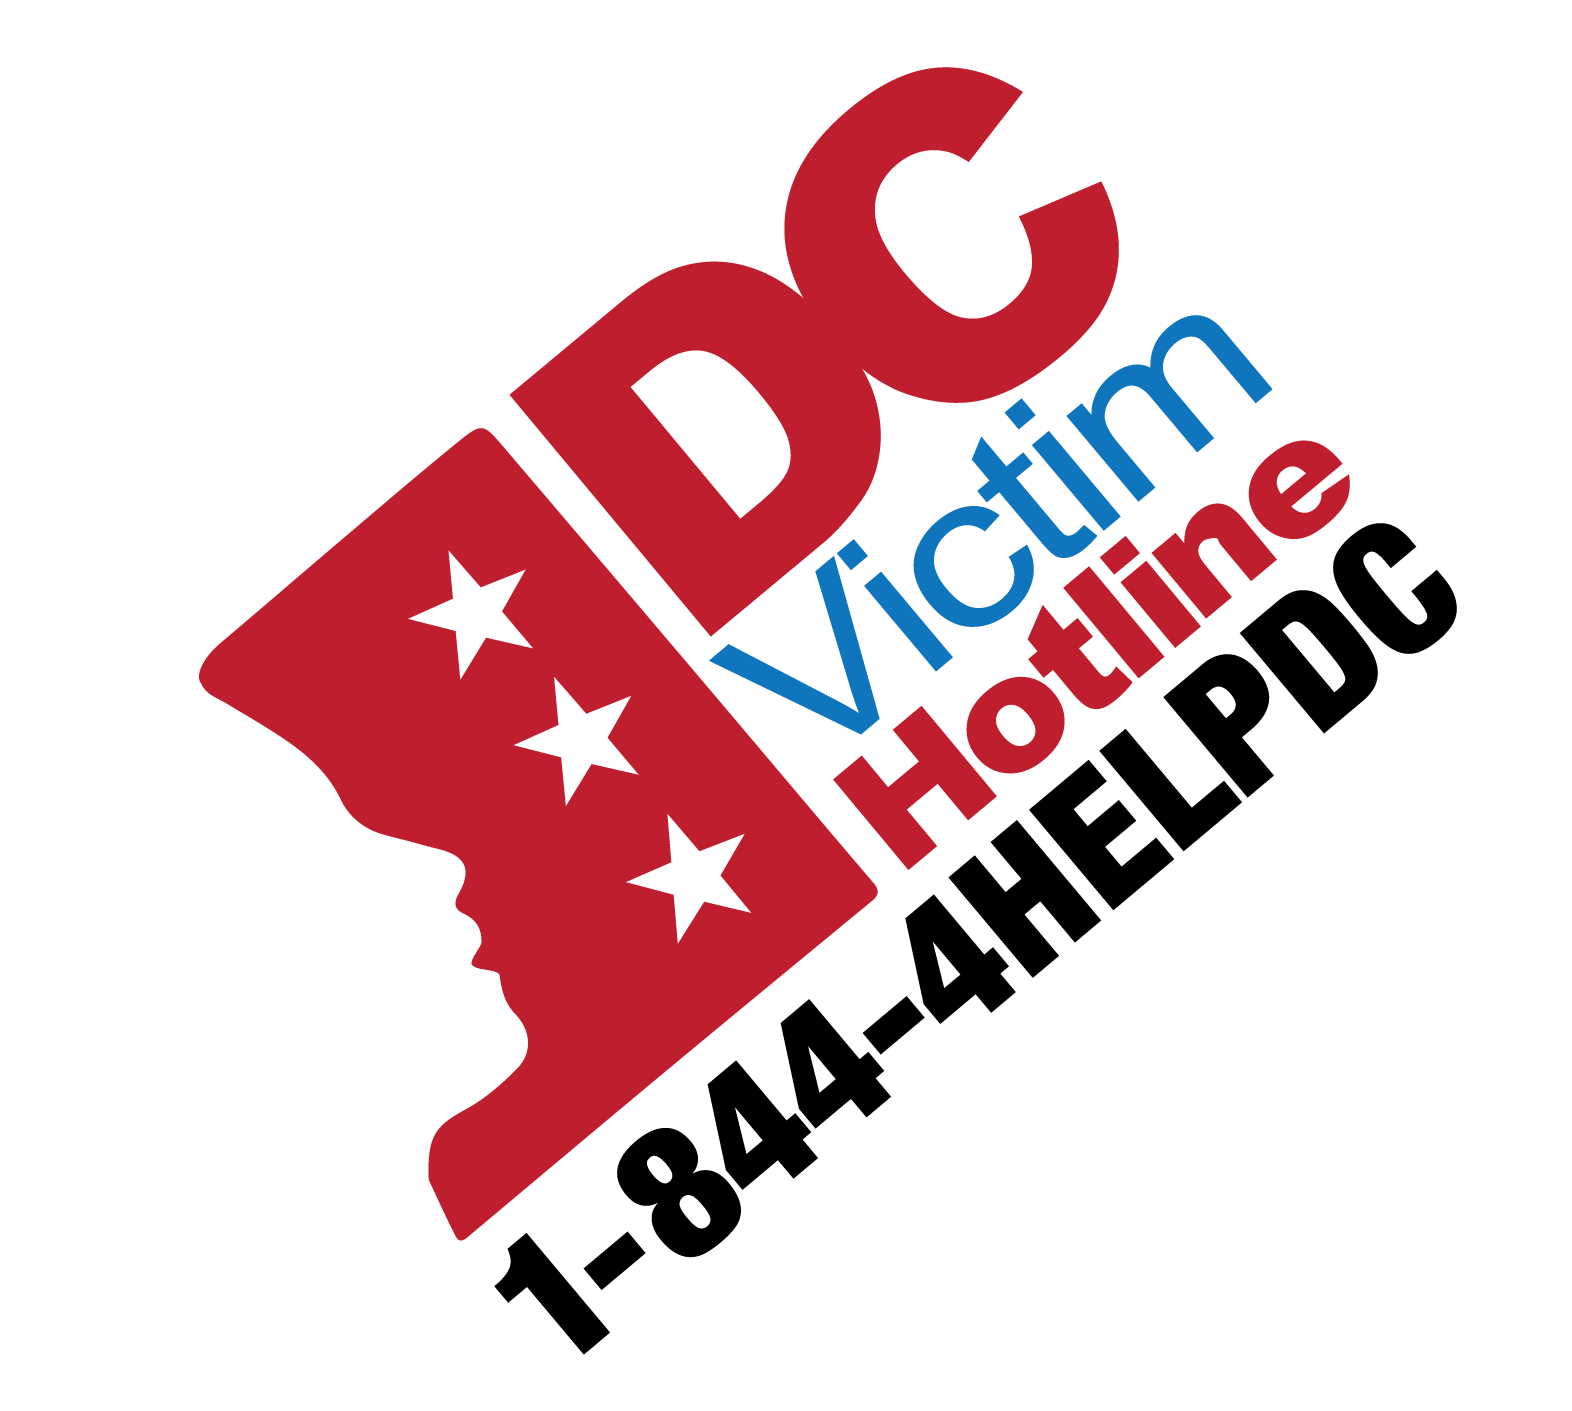 To access services - Call or chat with the DC Victim Hotline 24/7/365